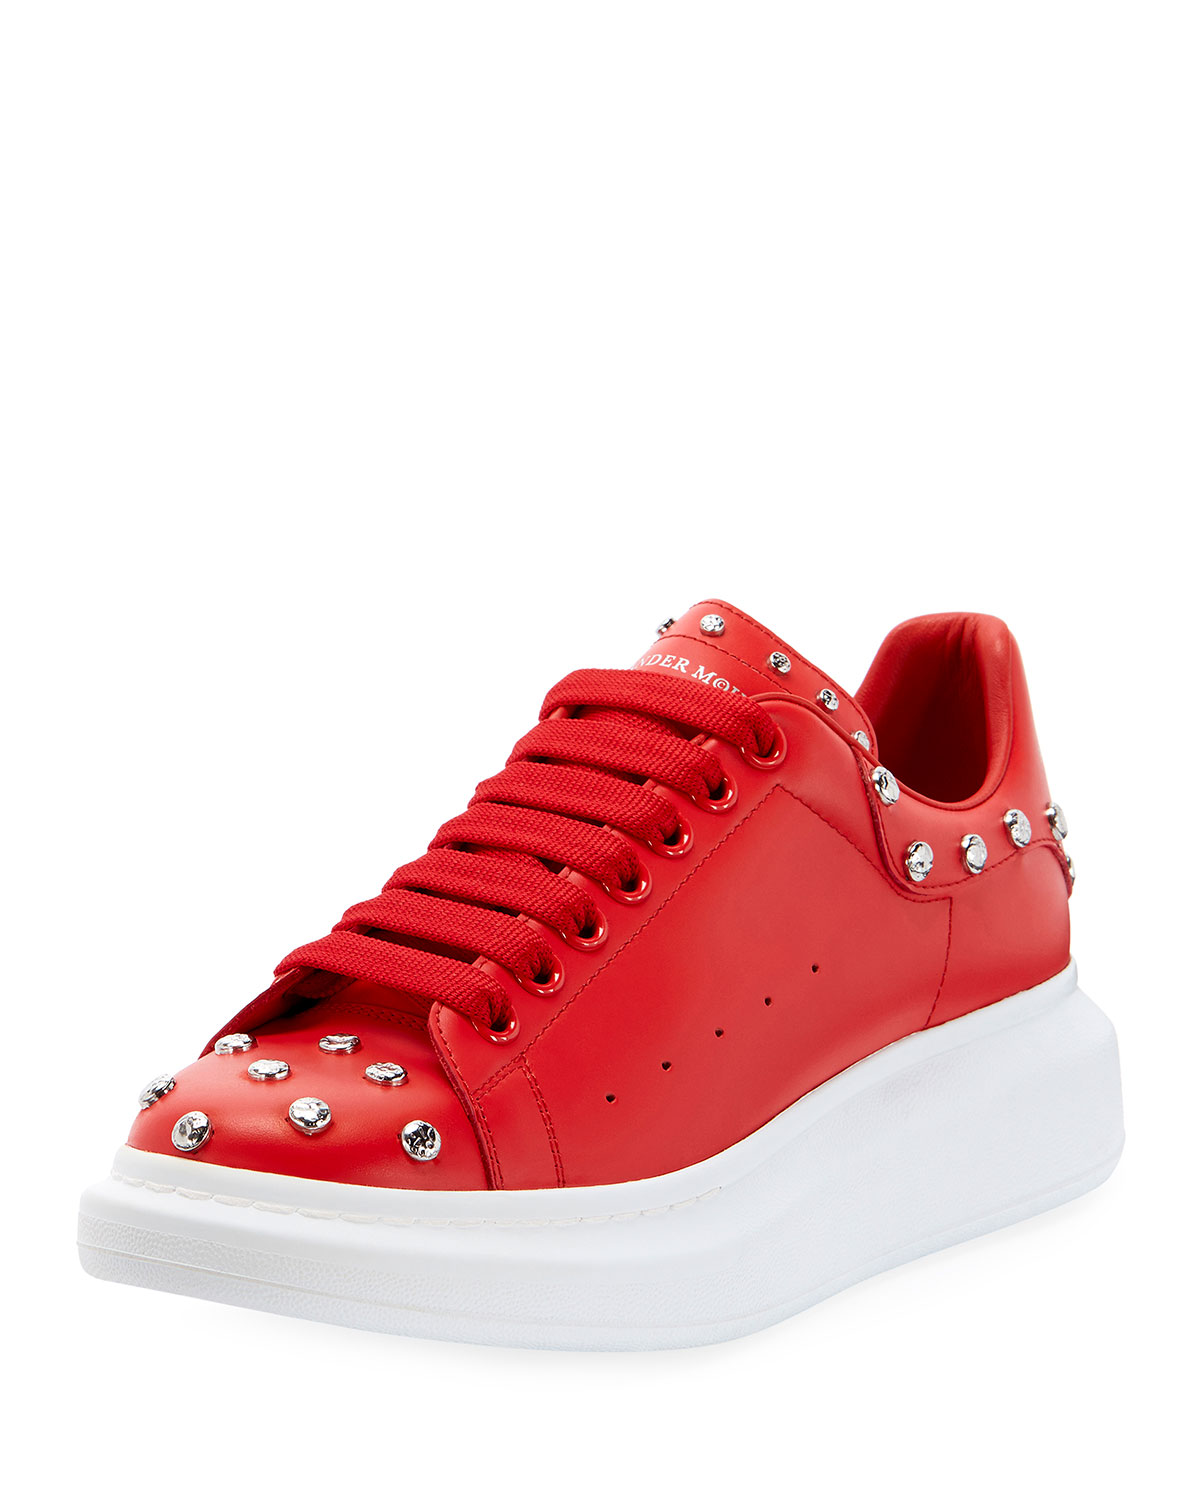 Alexander McQueen Men's Red Studded Leather Low-Top Sneakers with Oversize Sole